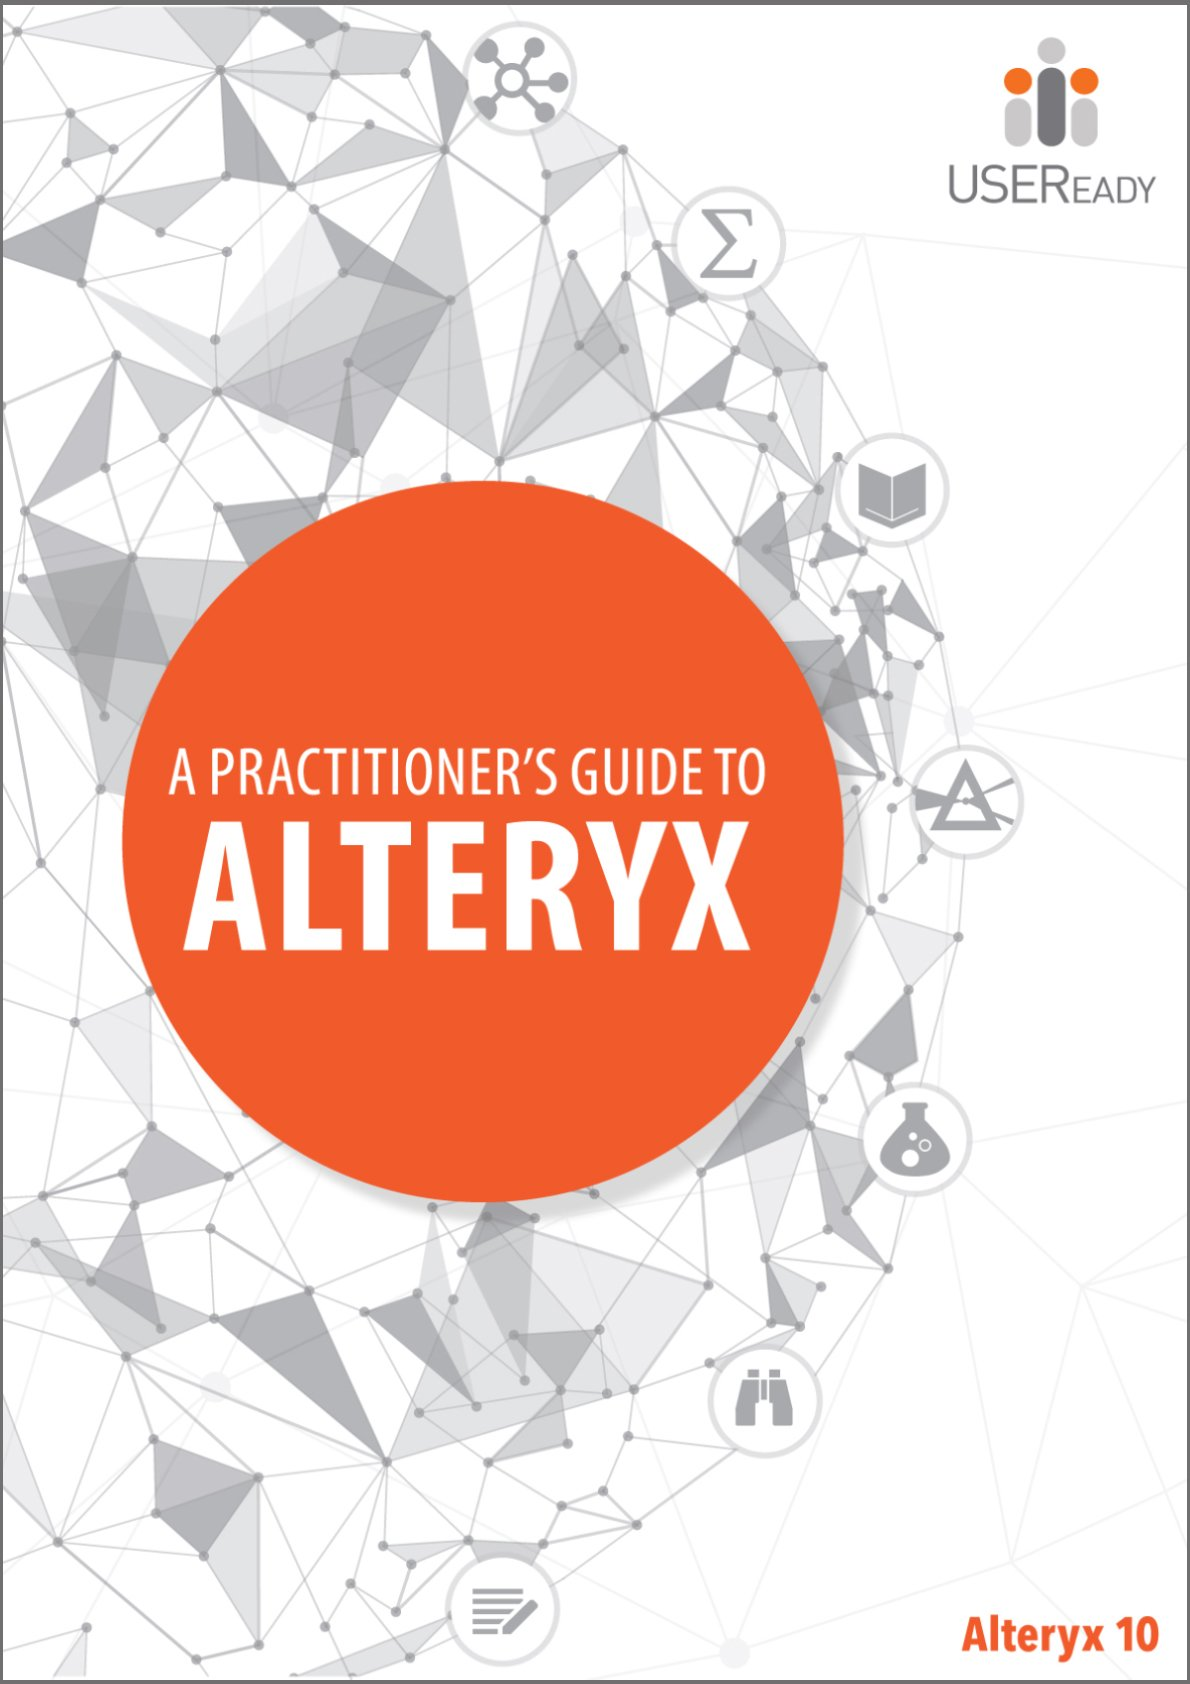 A Practitioner's Guide To Alteryx: USEReady: 9780692447956